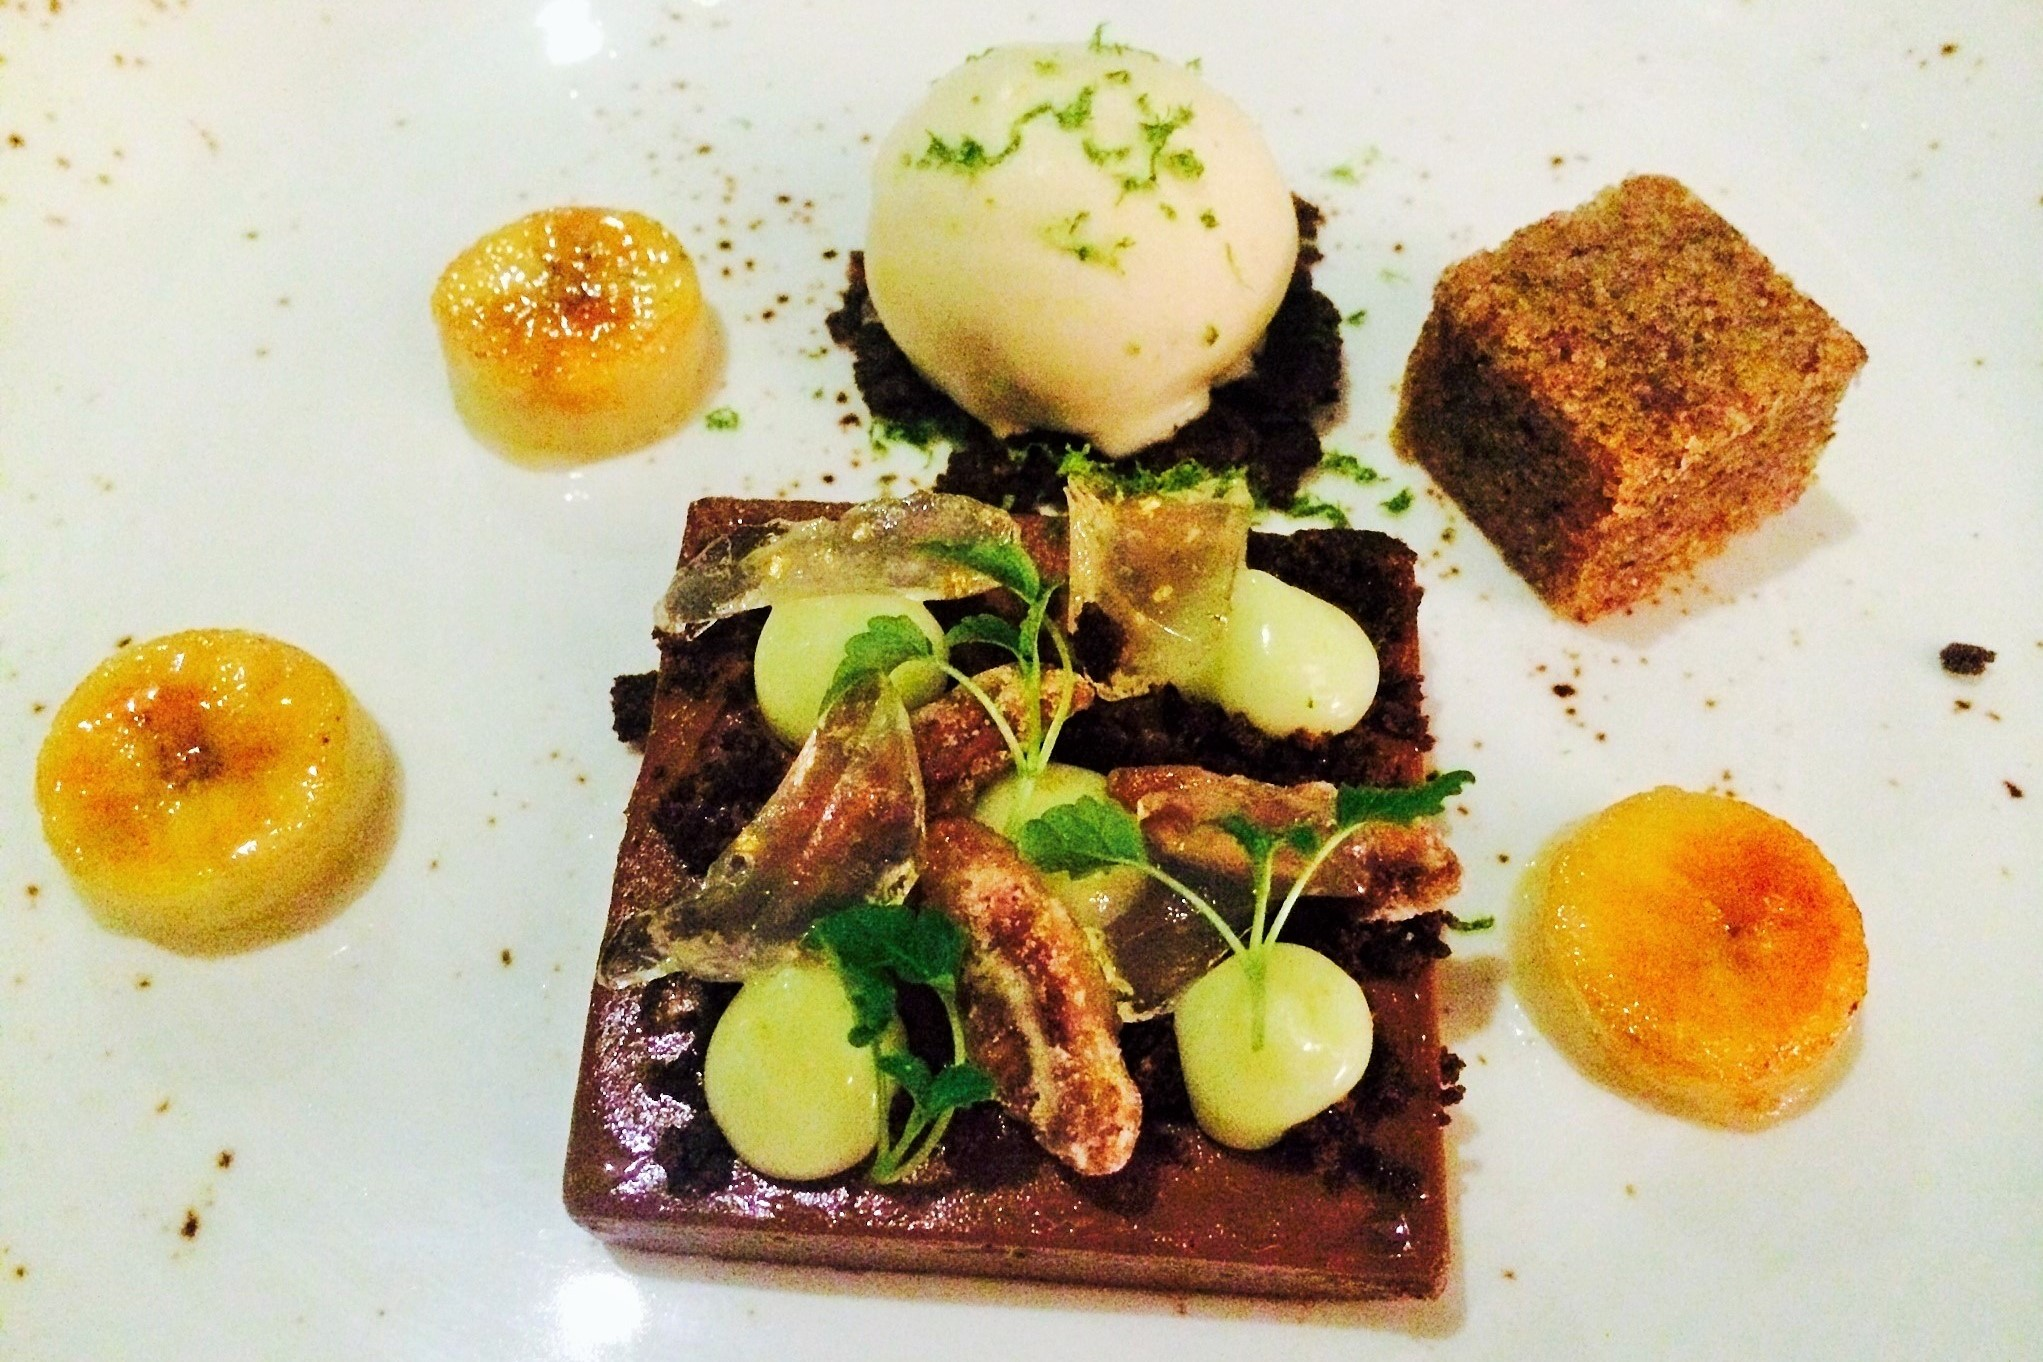 MICHELIN STAR DINING - The Cellar, Anstruther